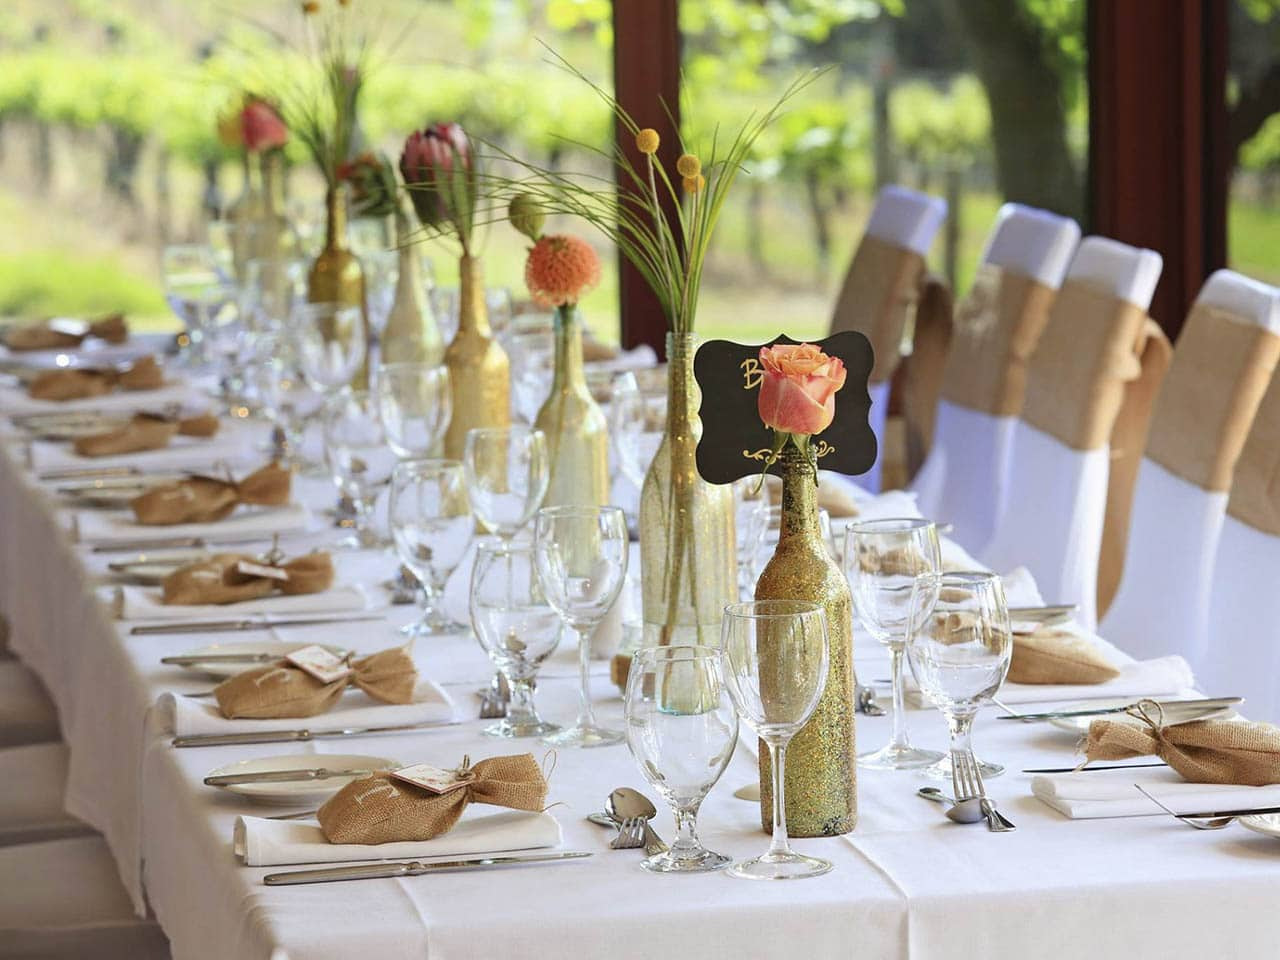 Dining setting with a long table and white table cloth, gold ribbons and gifts on table mats. Roses decorate the table in wine bottles.